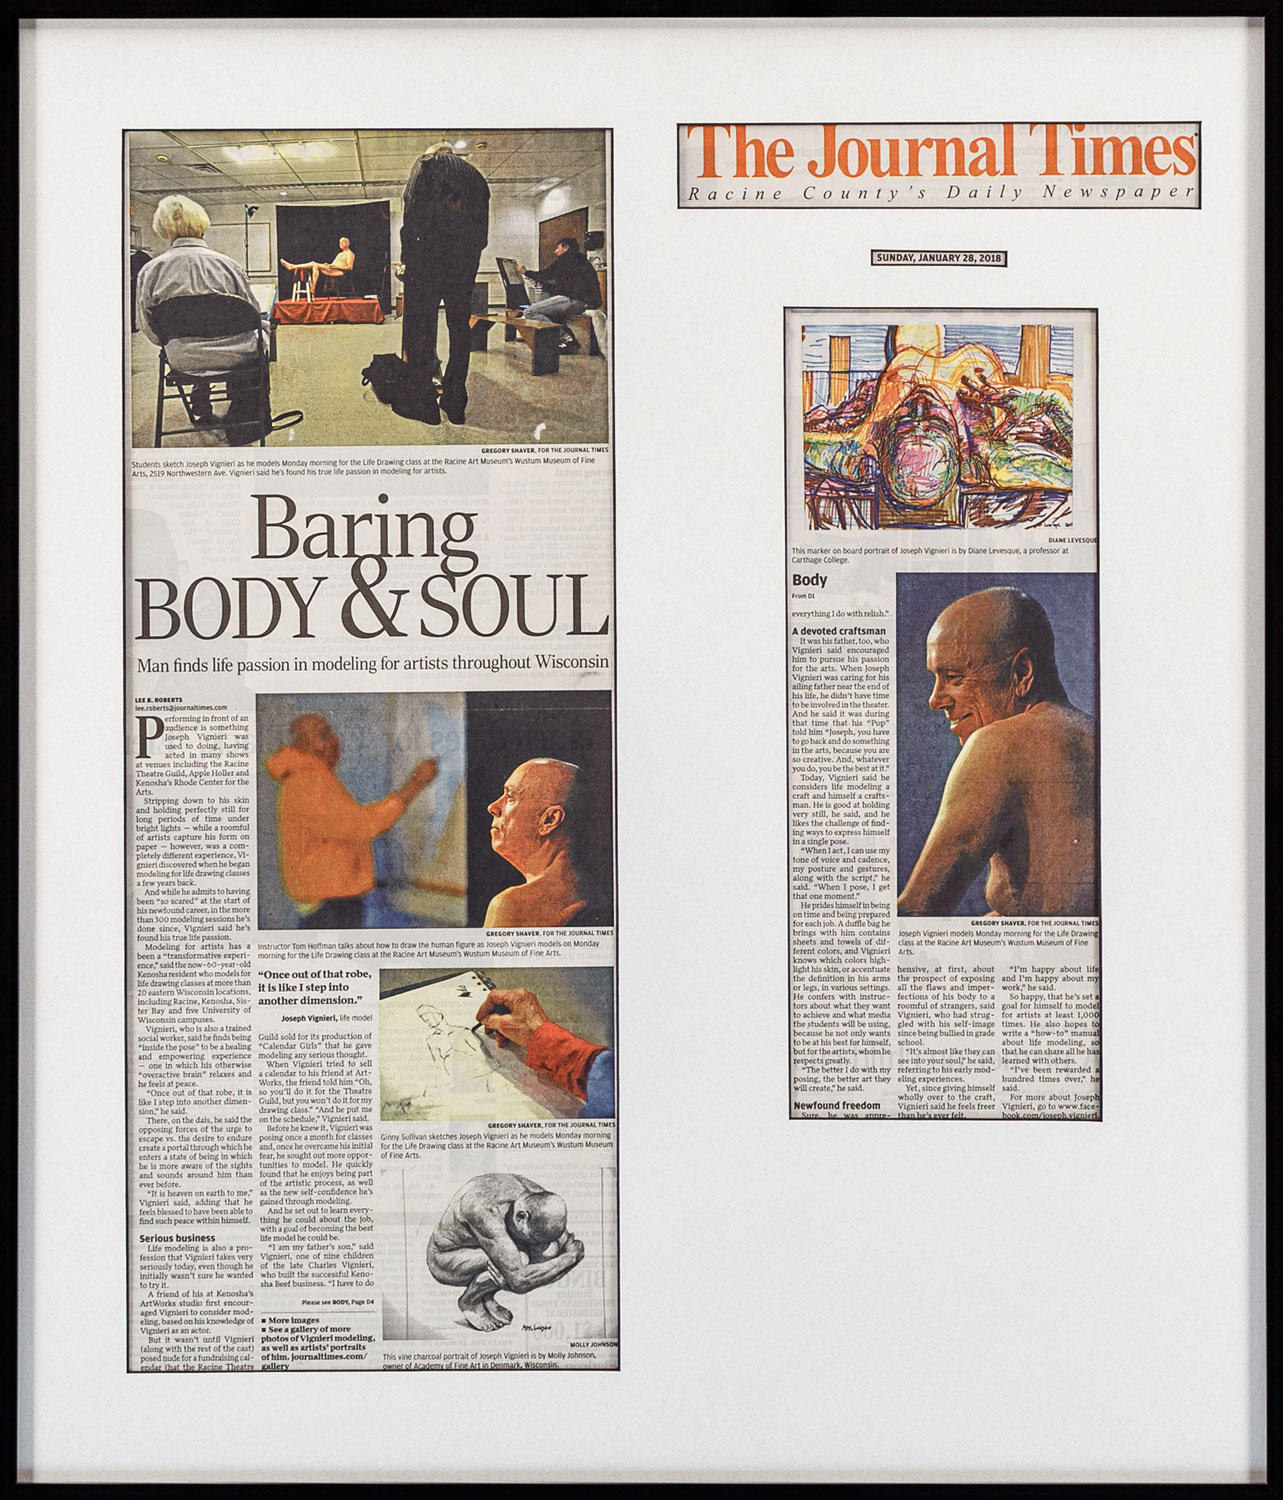 """Baring Body & Soul"" by Lee B. Roberts, Photographer: Gregory Shaver • The Journal Timers, Racine • 1/28/18 • Newspaper Article"